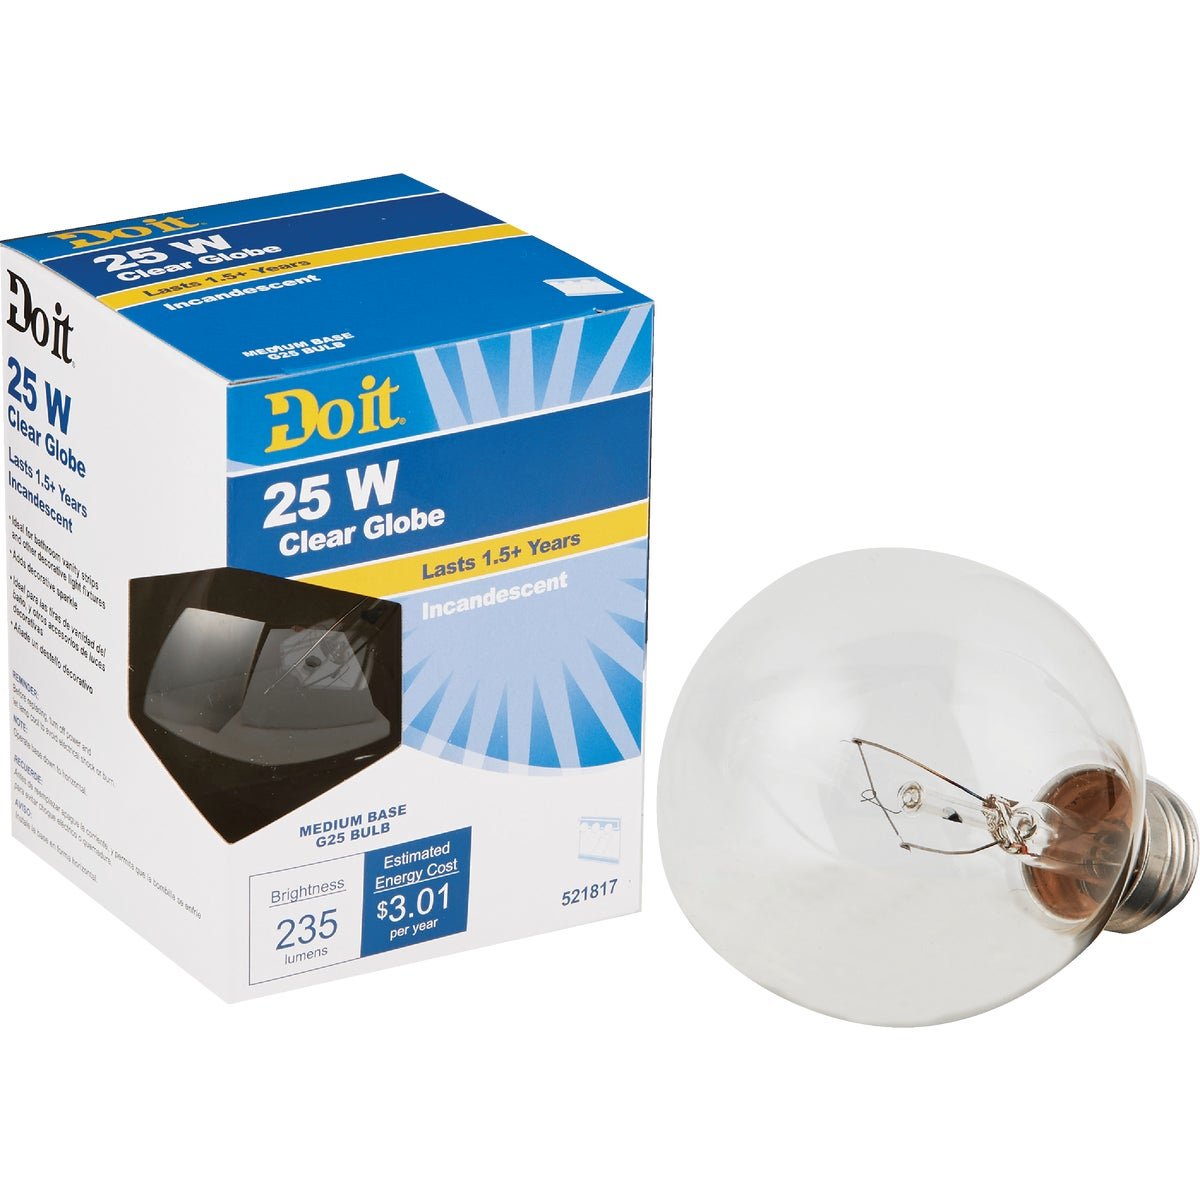 25W CLR 3-1/8GLOBE BULB - 17849 by G E Private Label